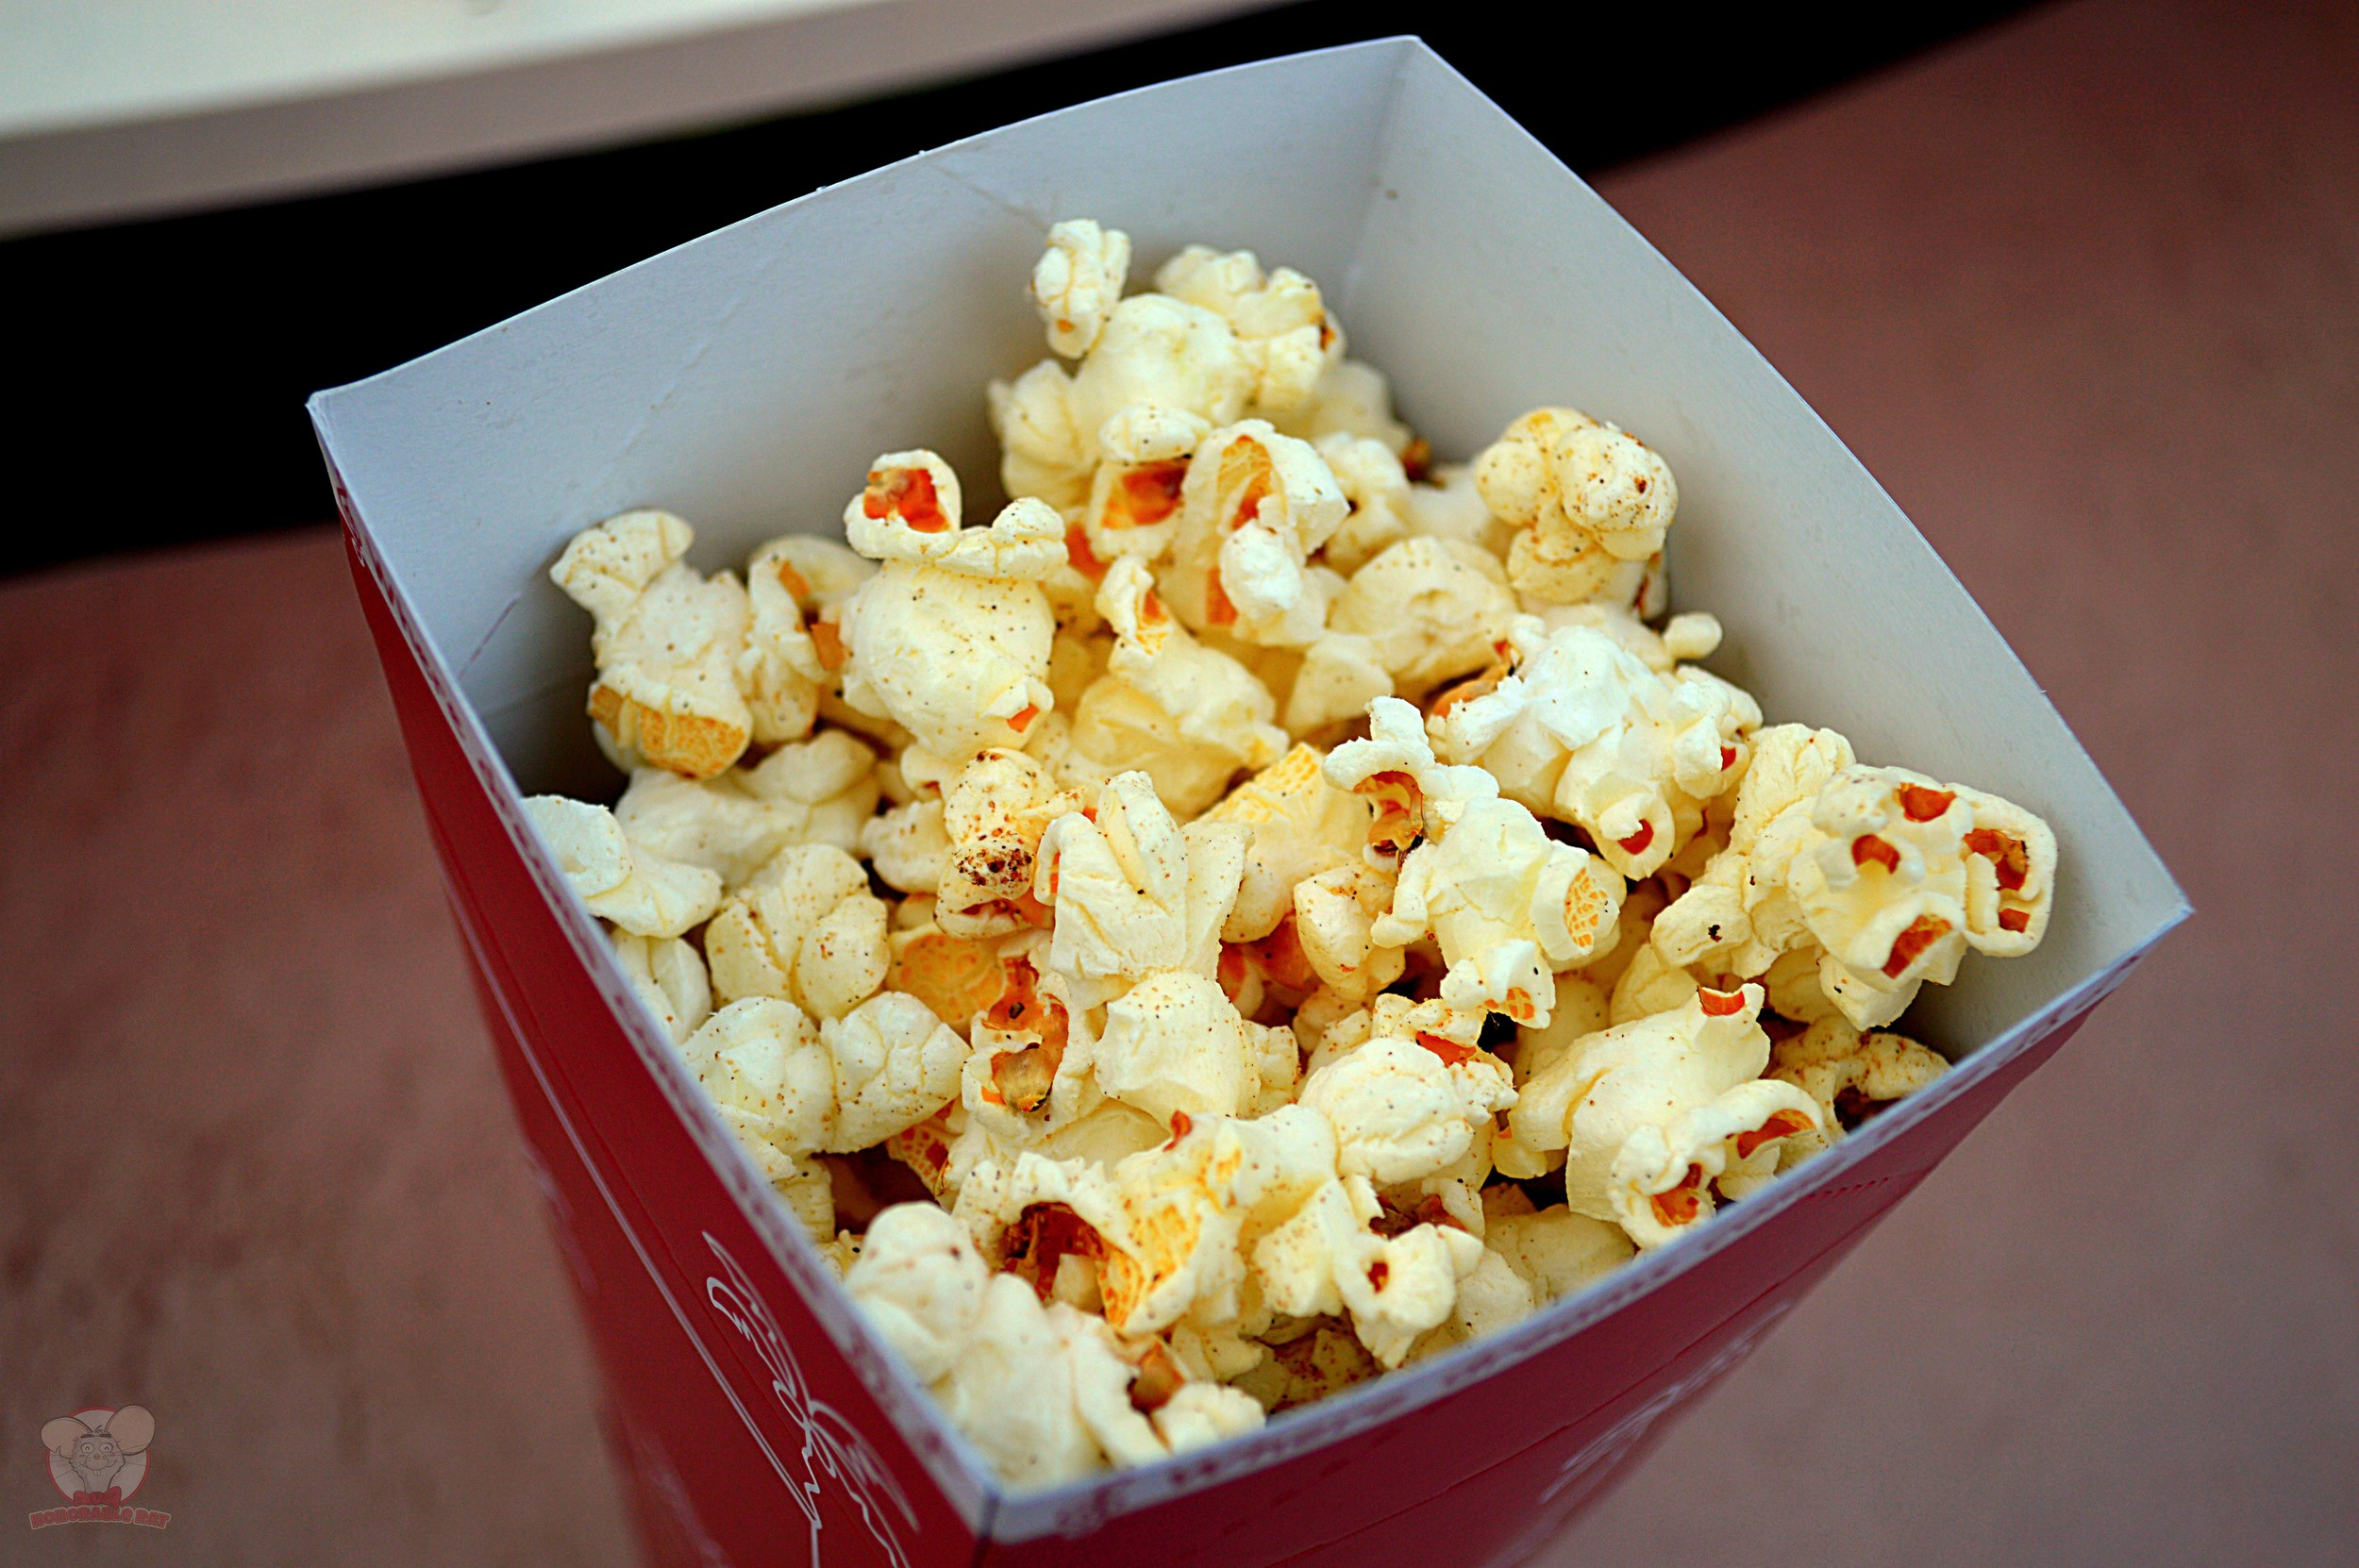 Jalapeno and Cheese Popcorn